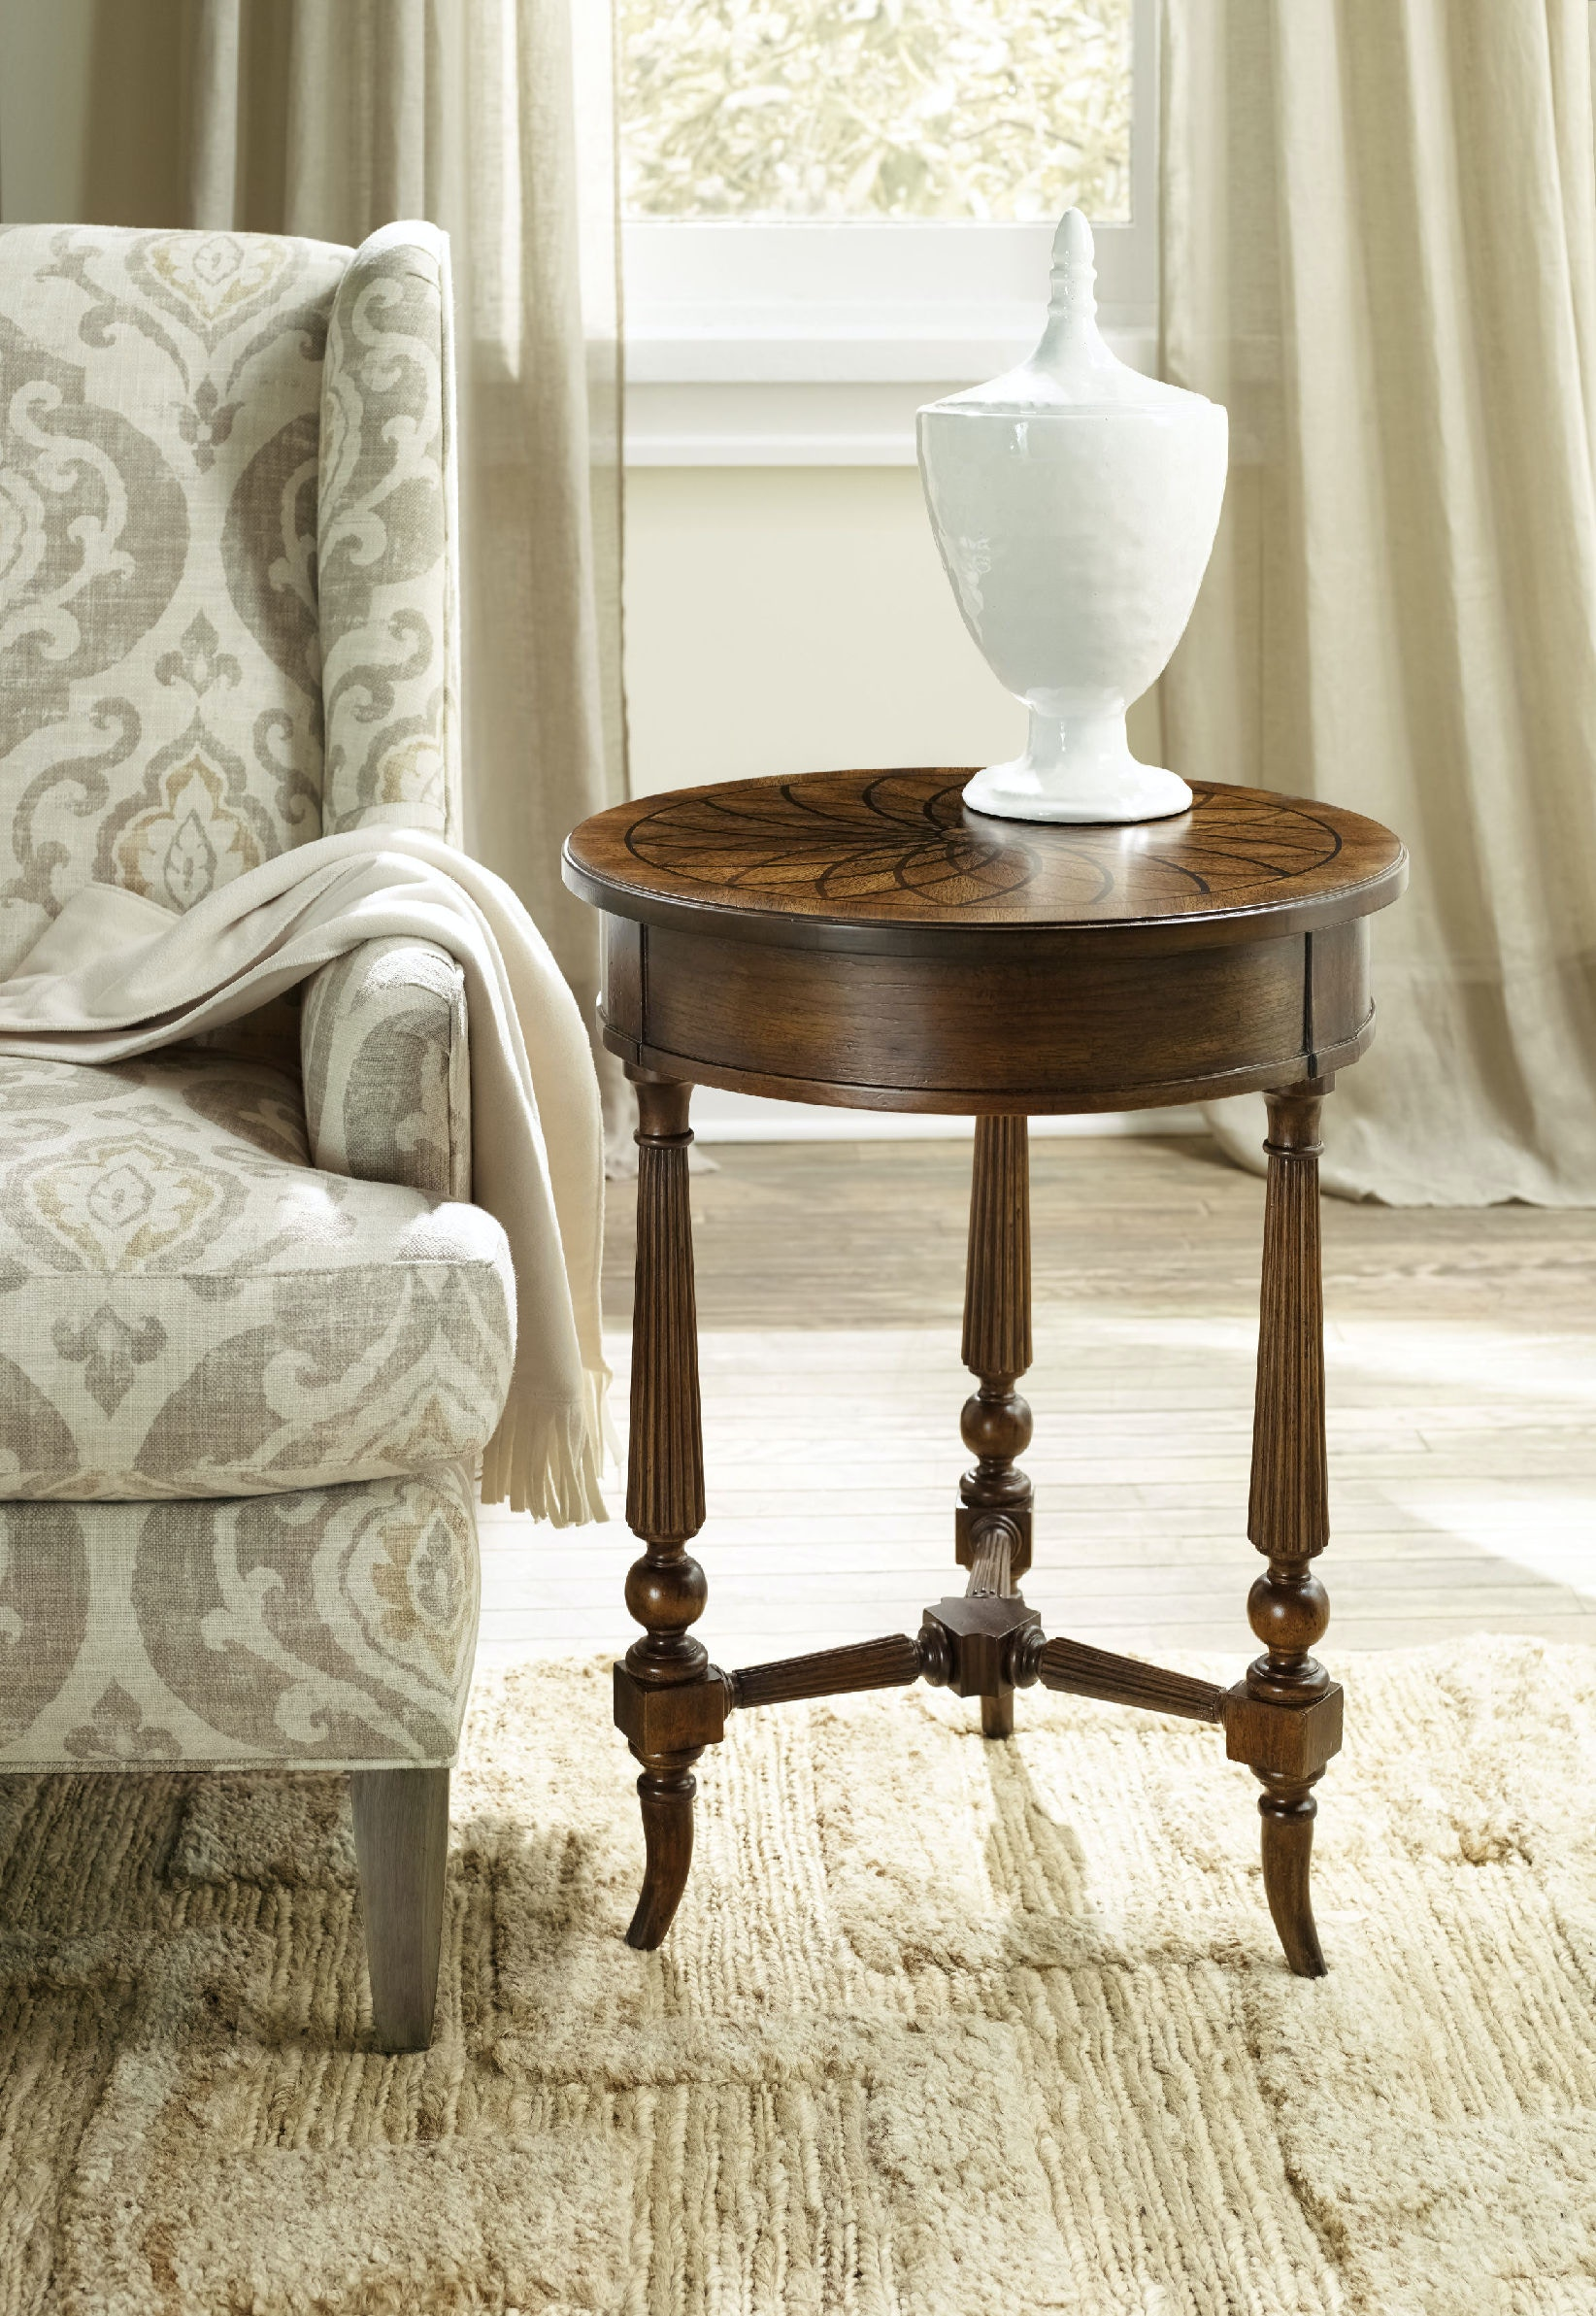 Hooker Furniture Living Room Archivist Round Accent Table 5447-50006